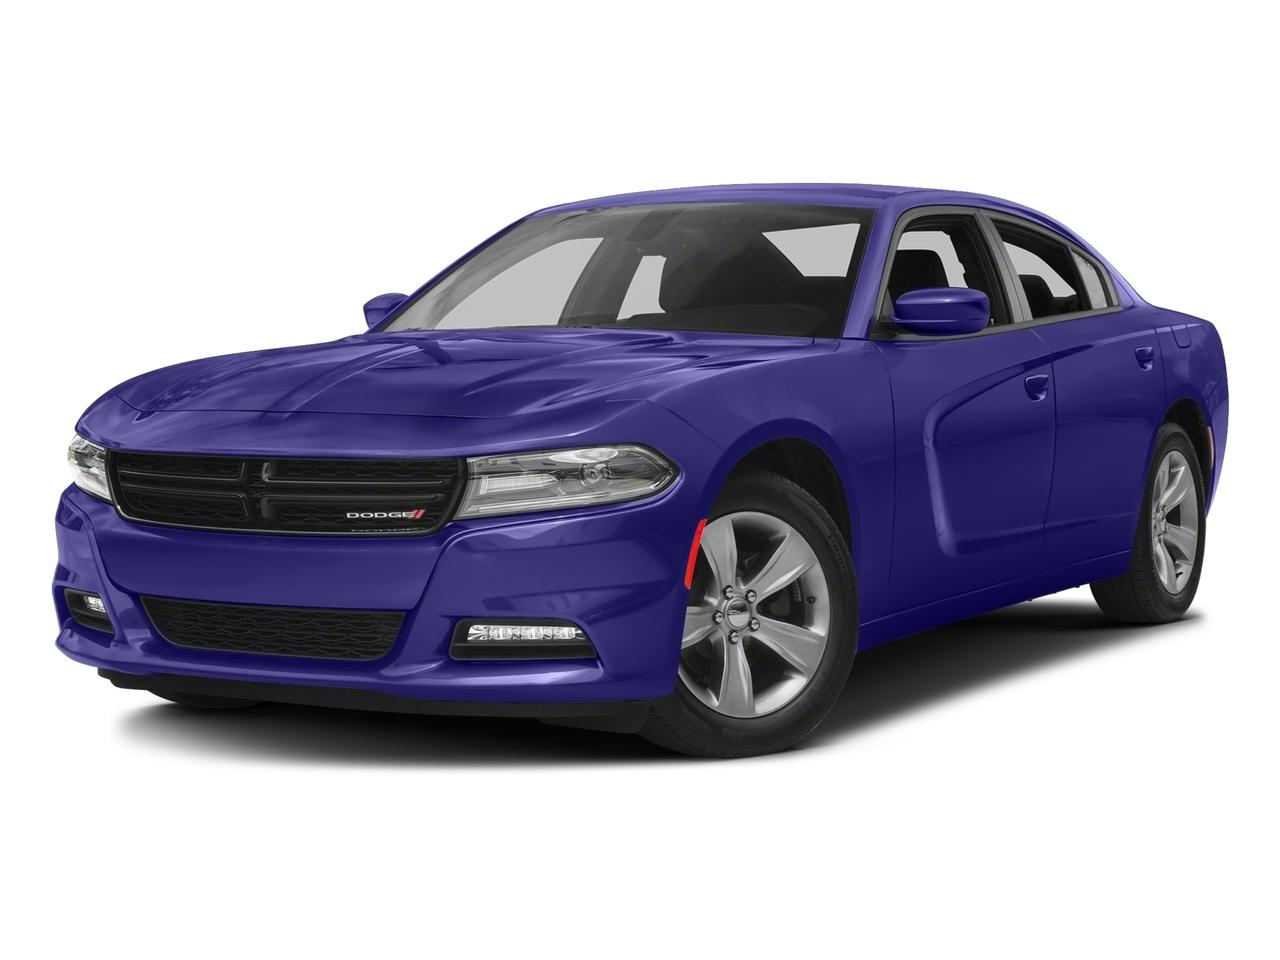 2016 Dodge Charger Vehicle Photo in Killeen, TX 76541